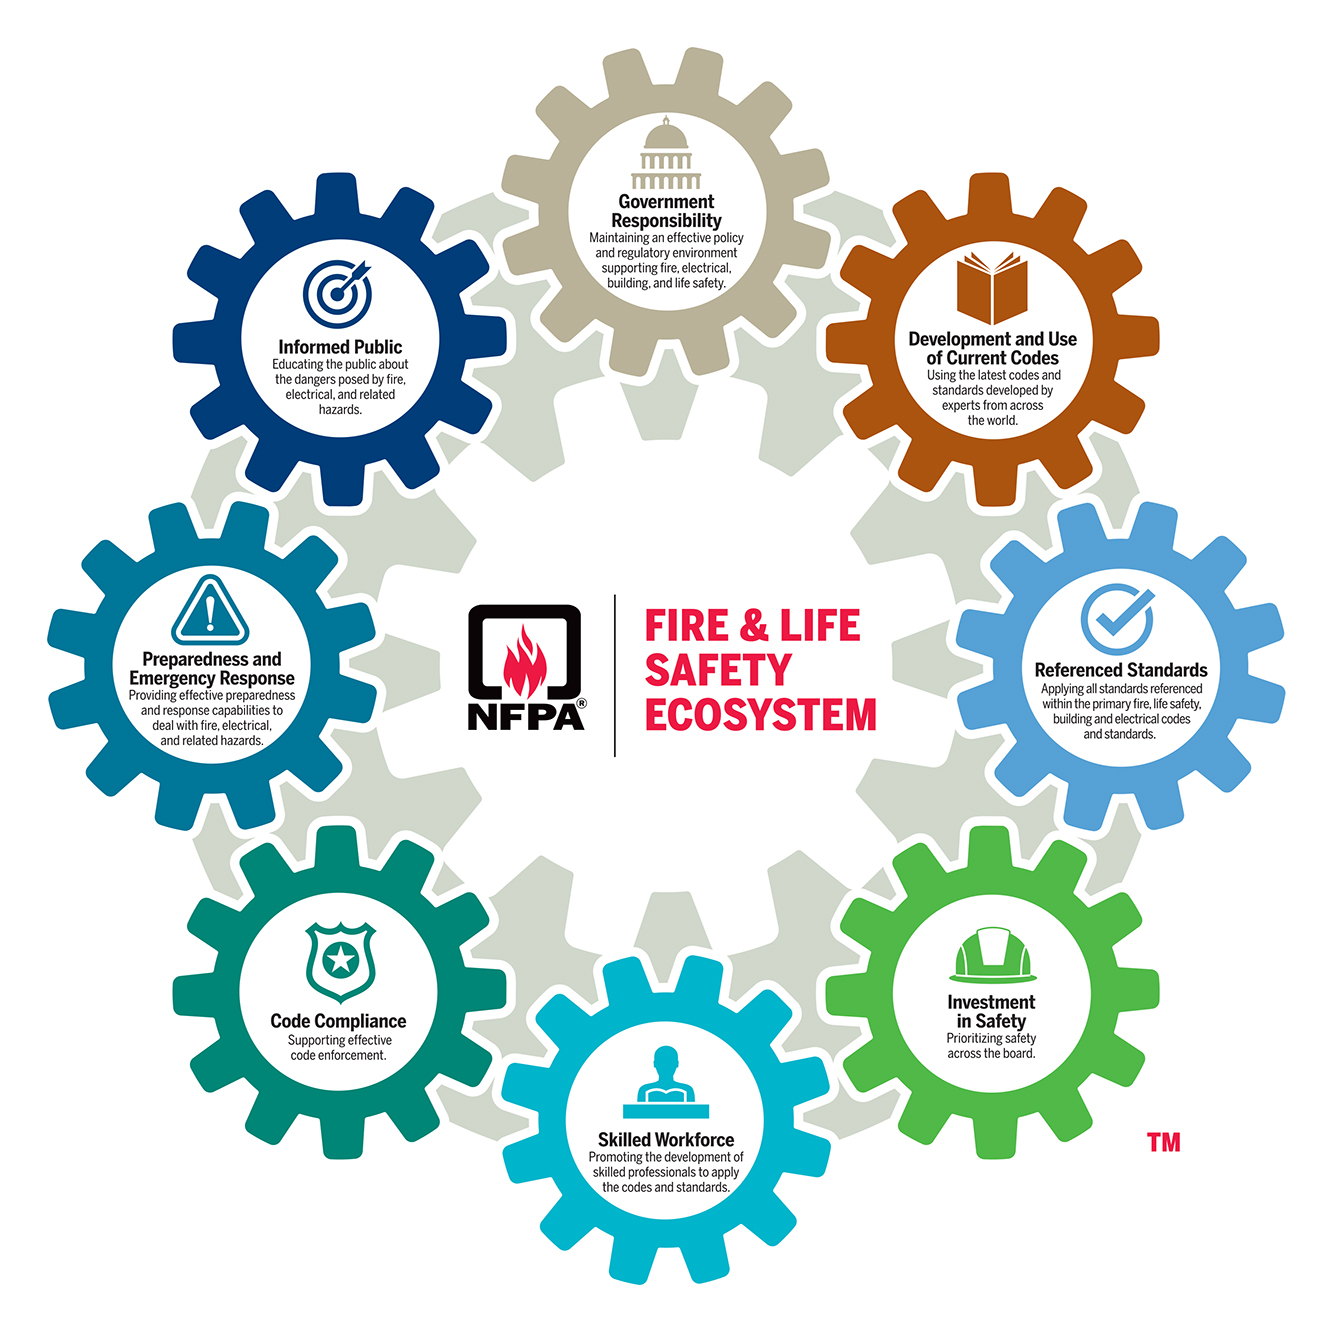 nfpa the nfpa fire life safety ecosystem